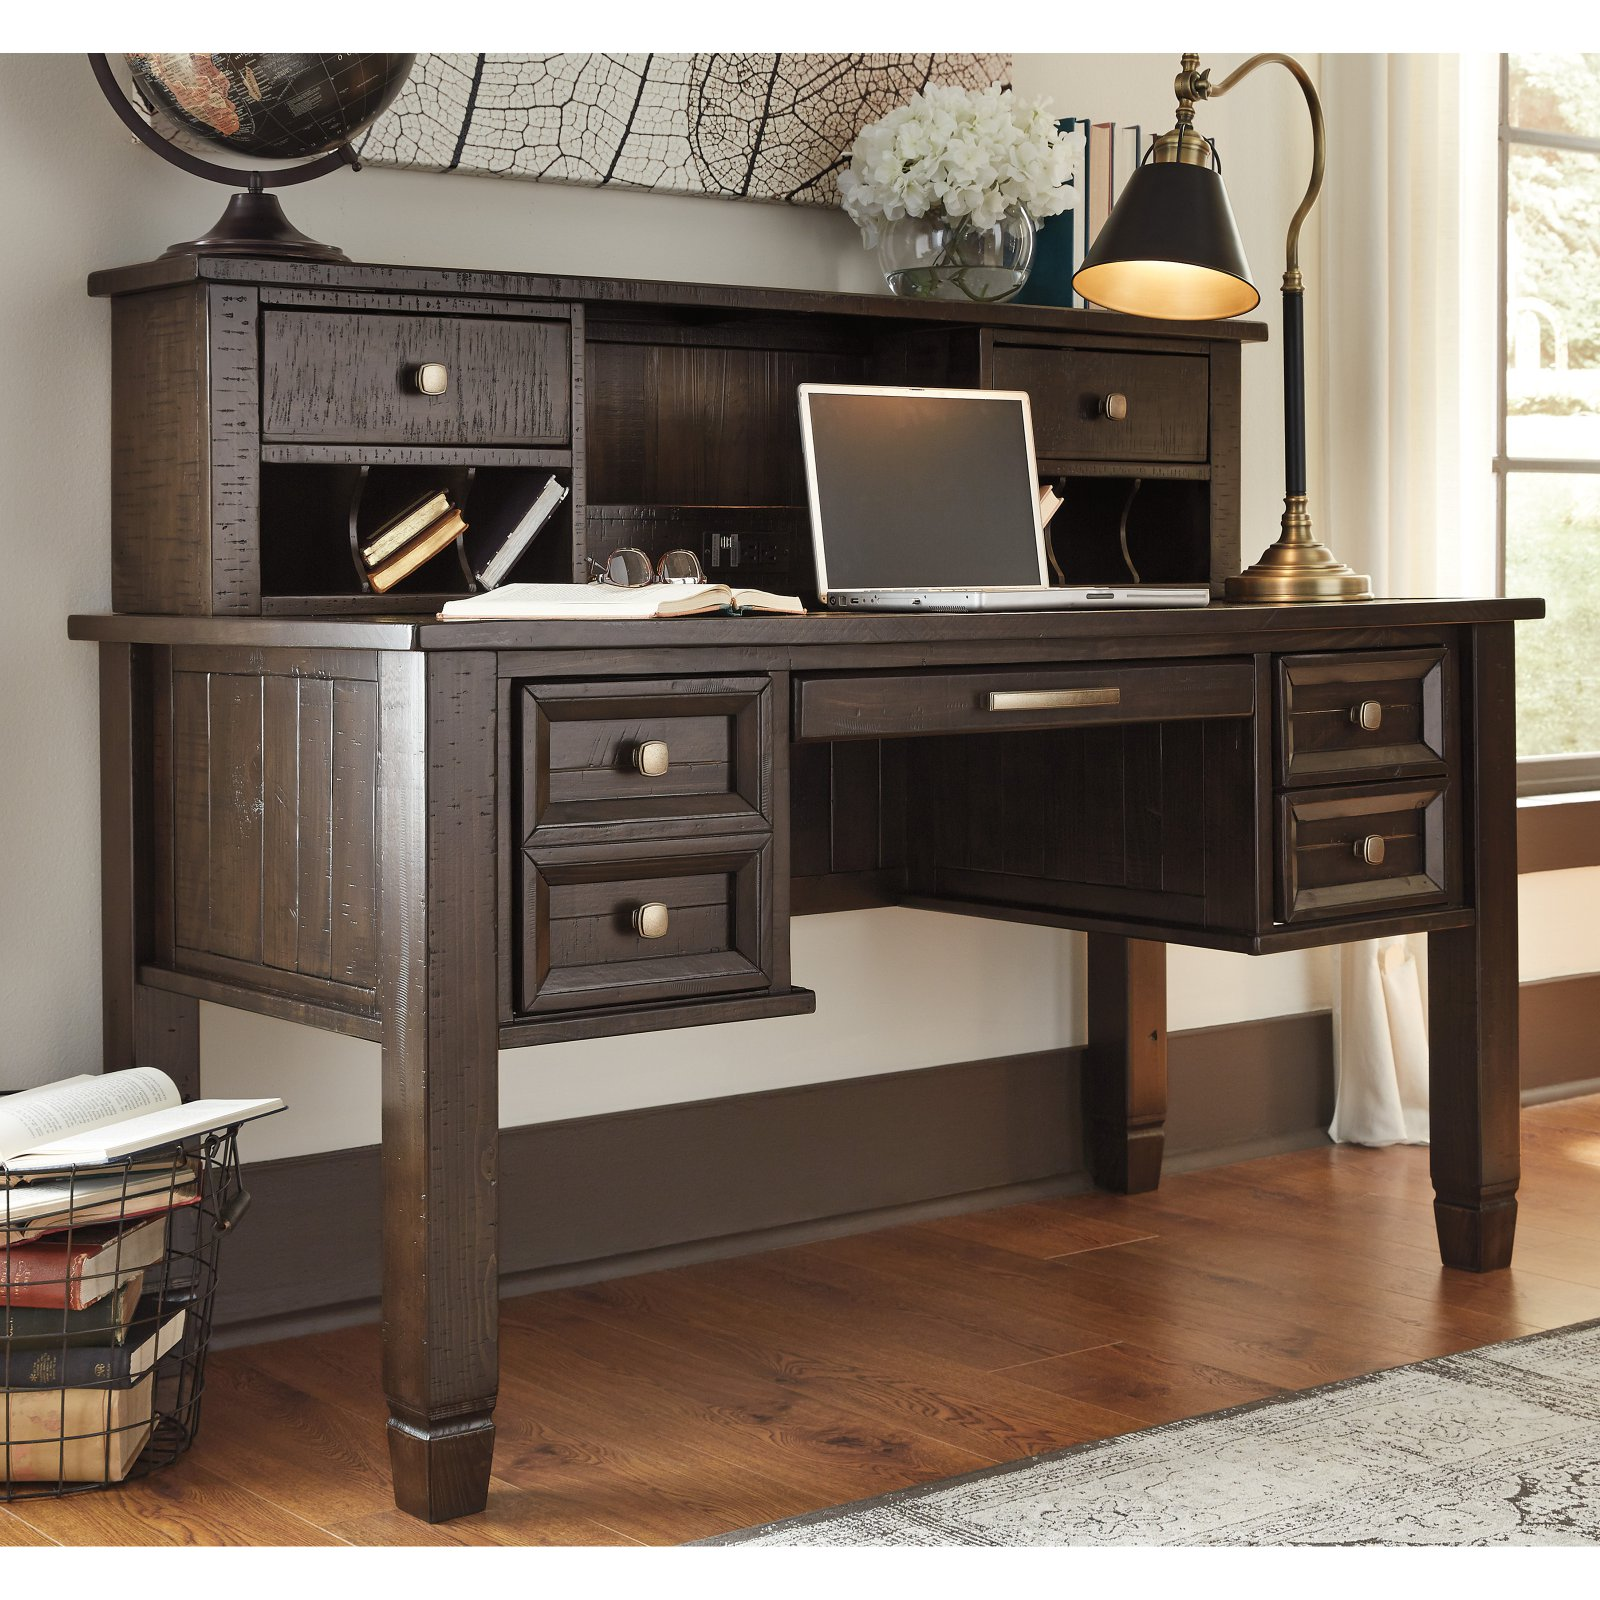 Signature Design by Ashley Townser 60 in. Desk with Optional Hutch